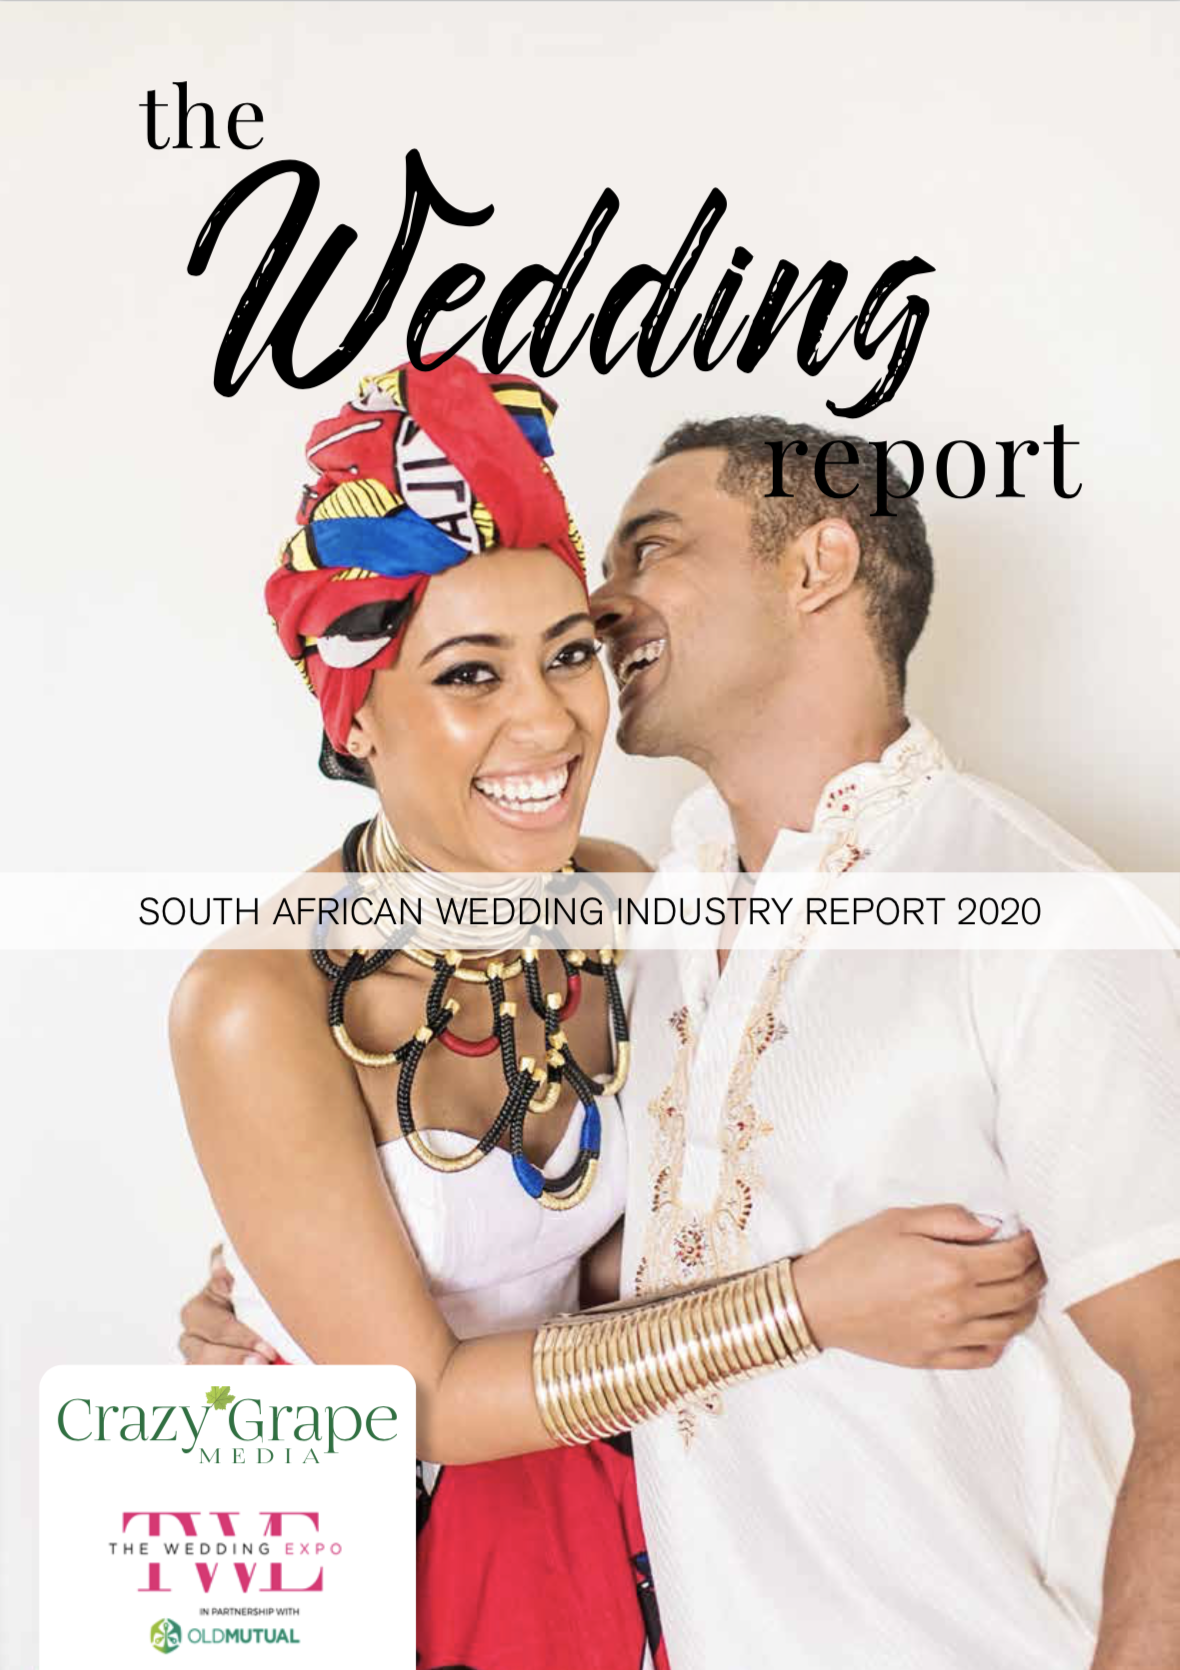 South African Wedding Industry Report 2020